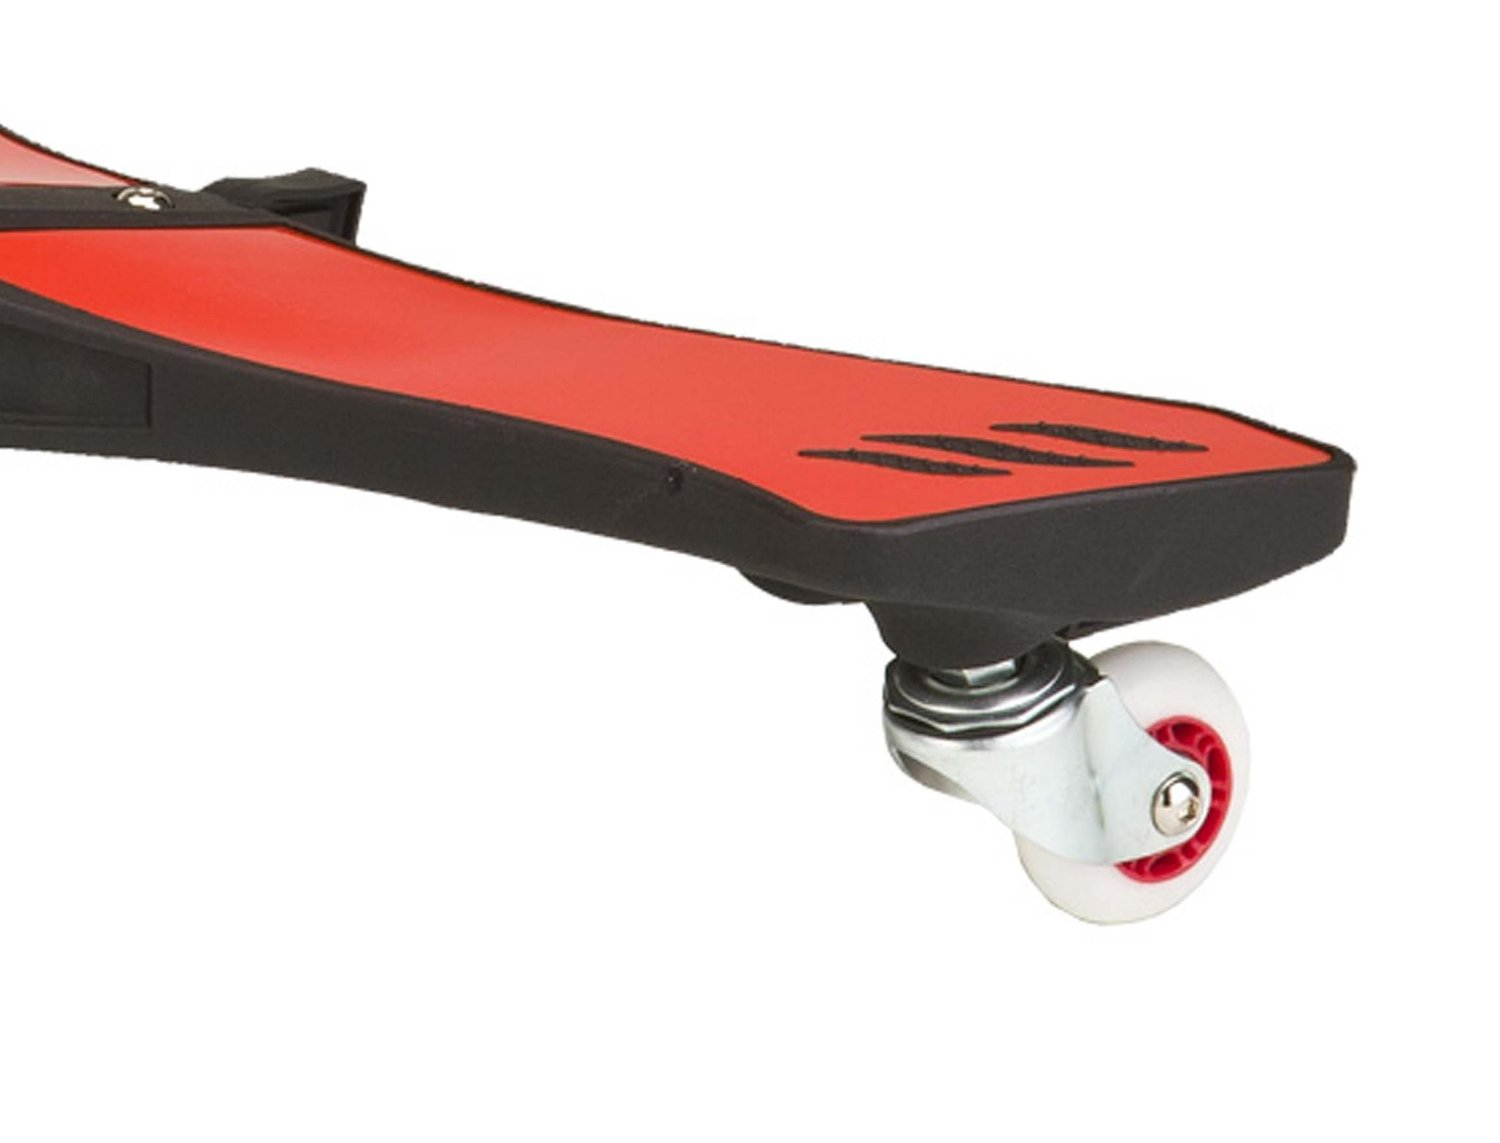 20036058�Razor PowerWing Scooter